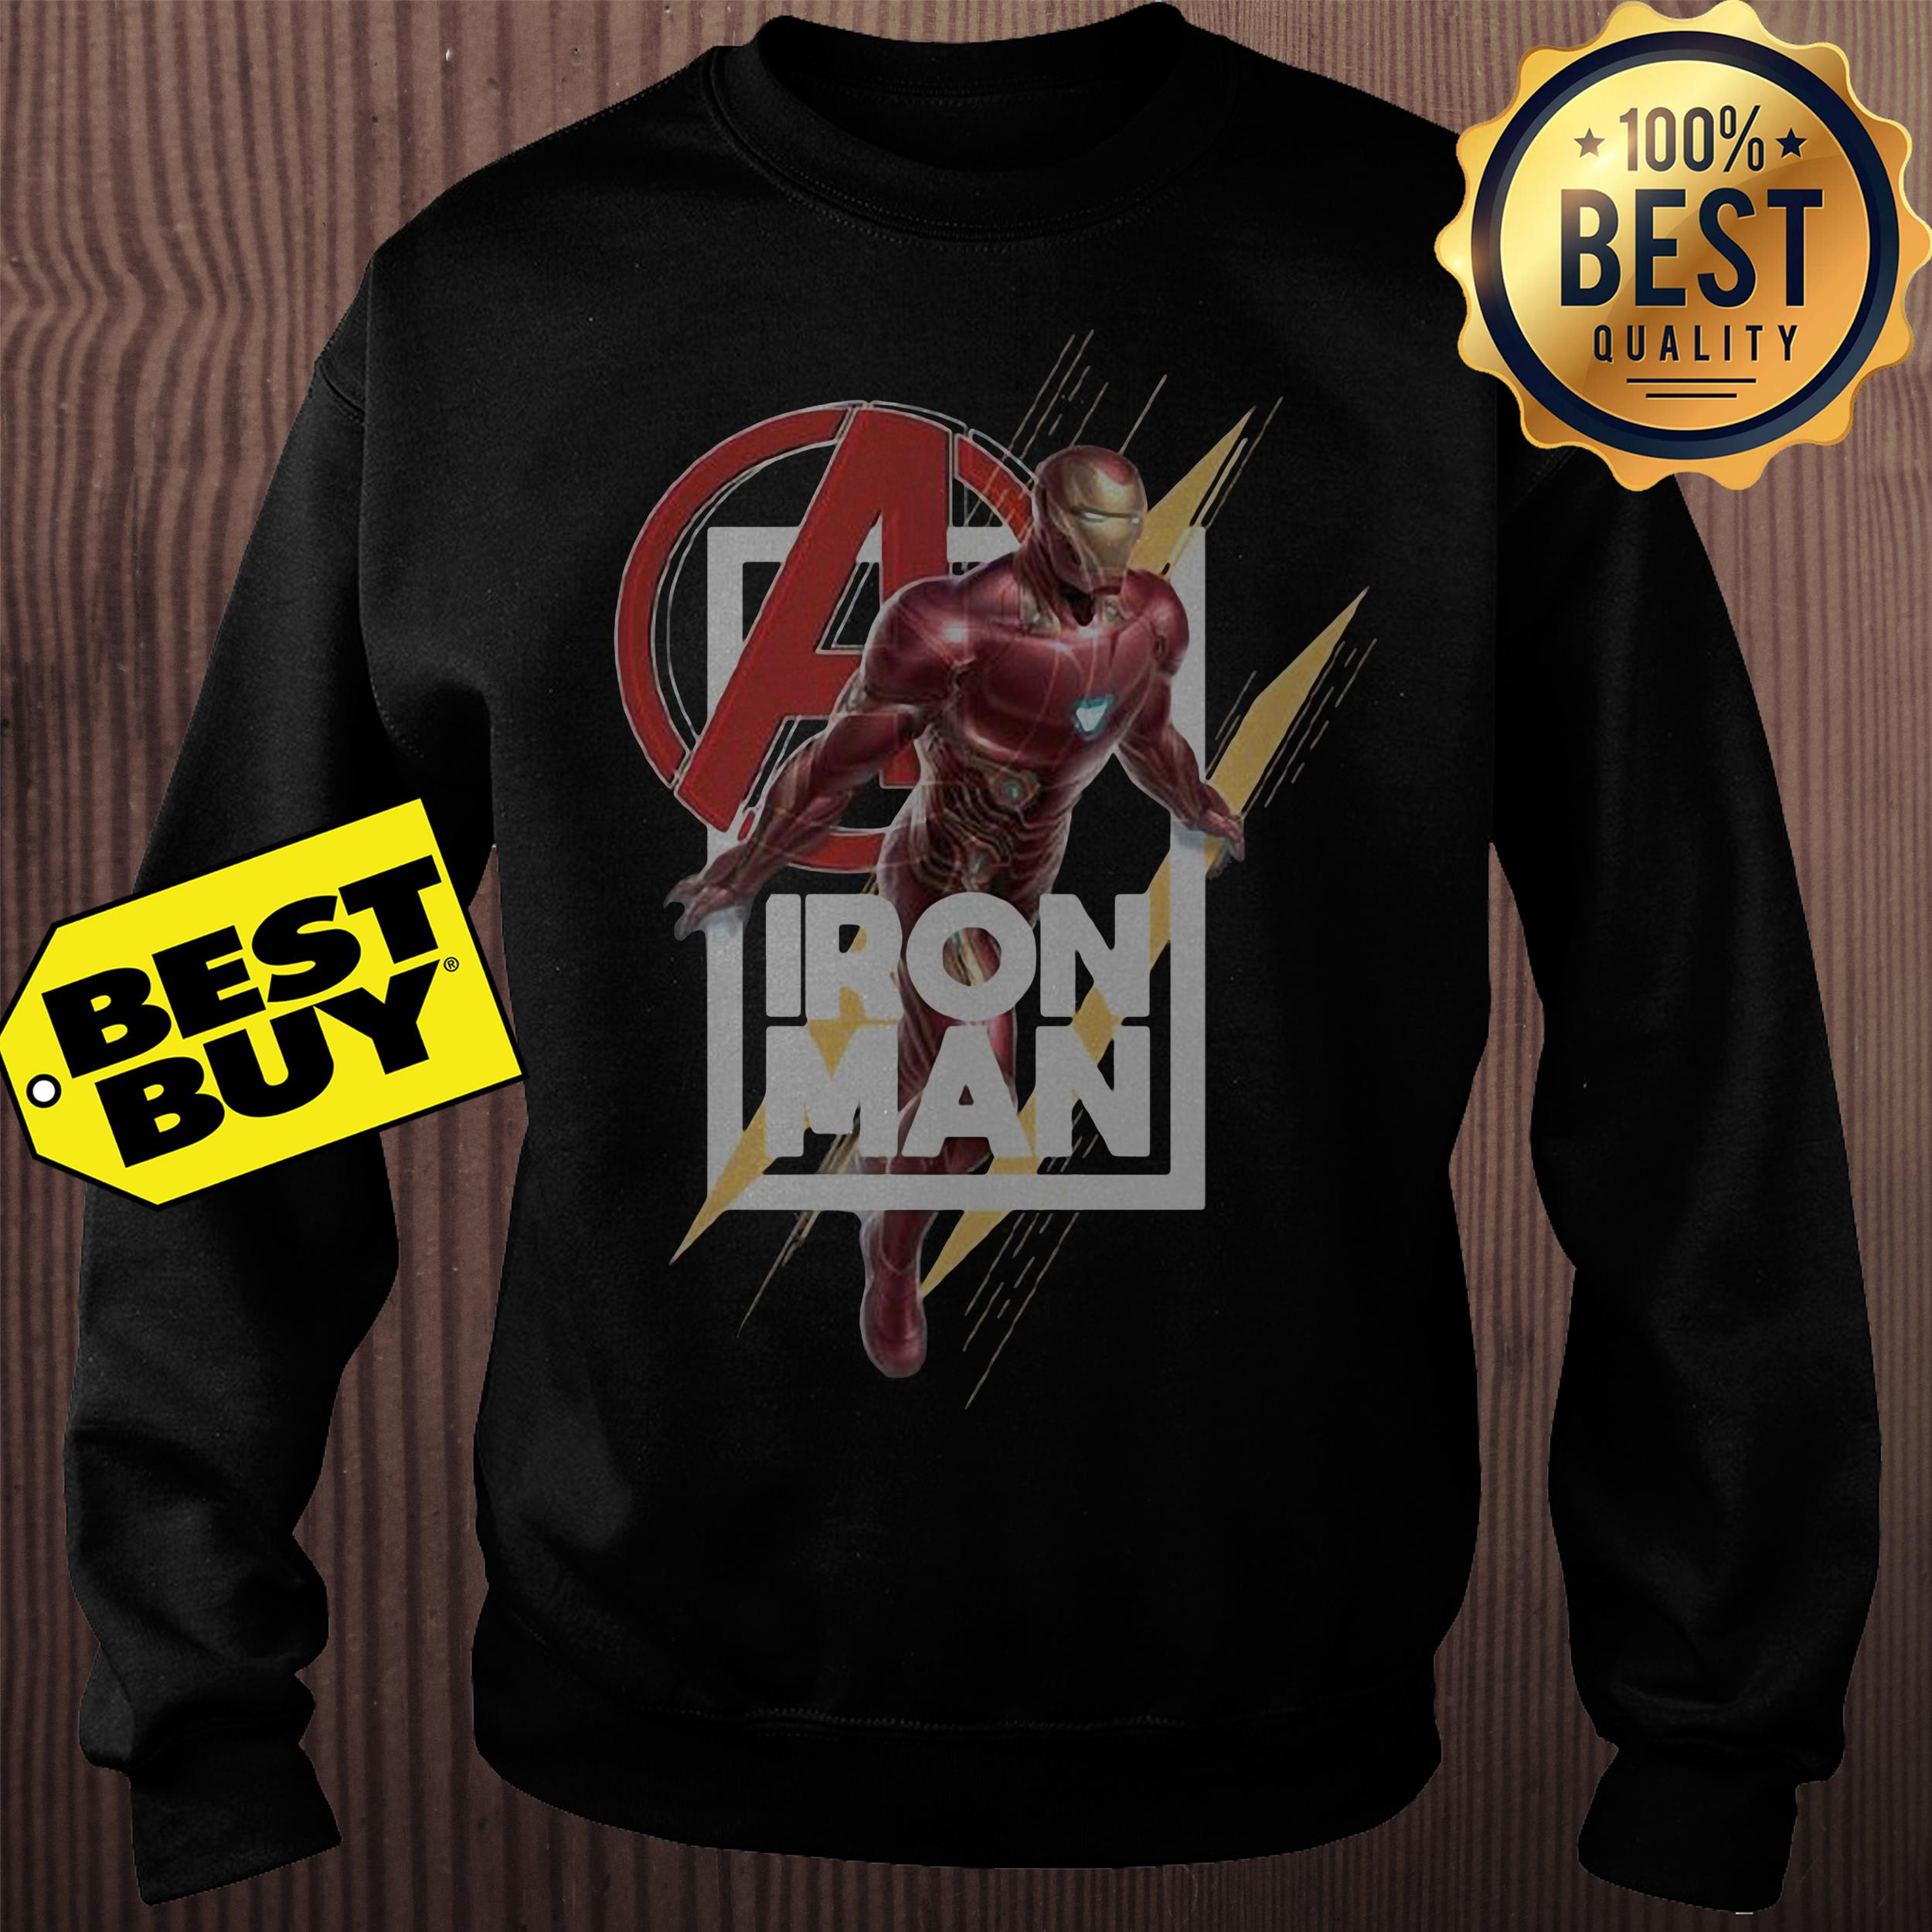 Avenger Iron man Endgame sweatshirt